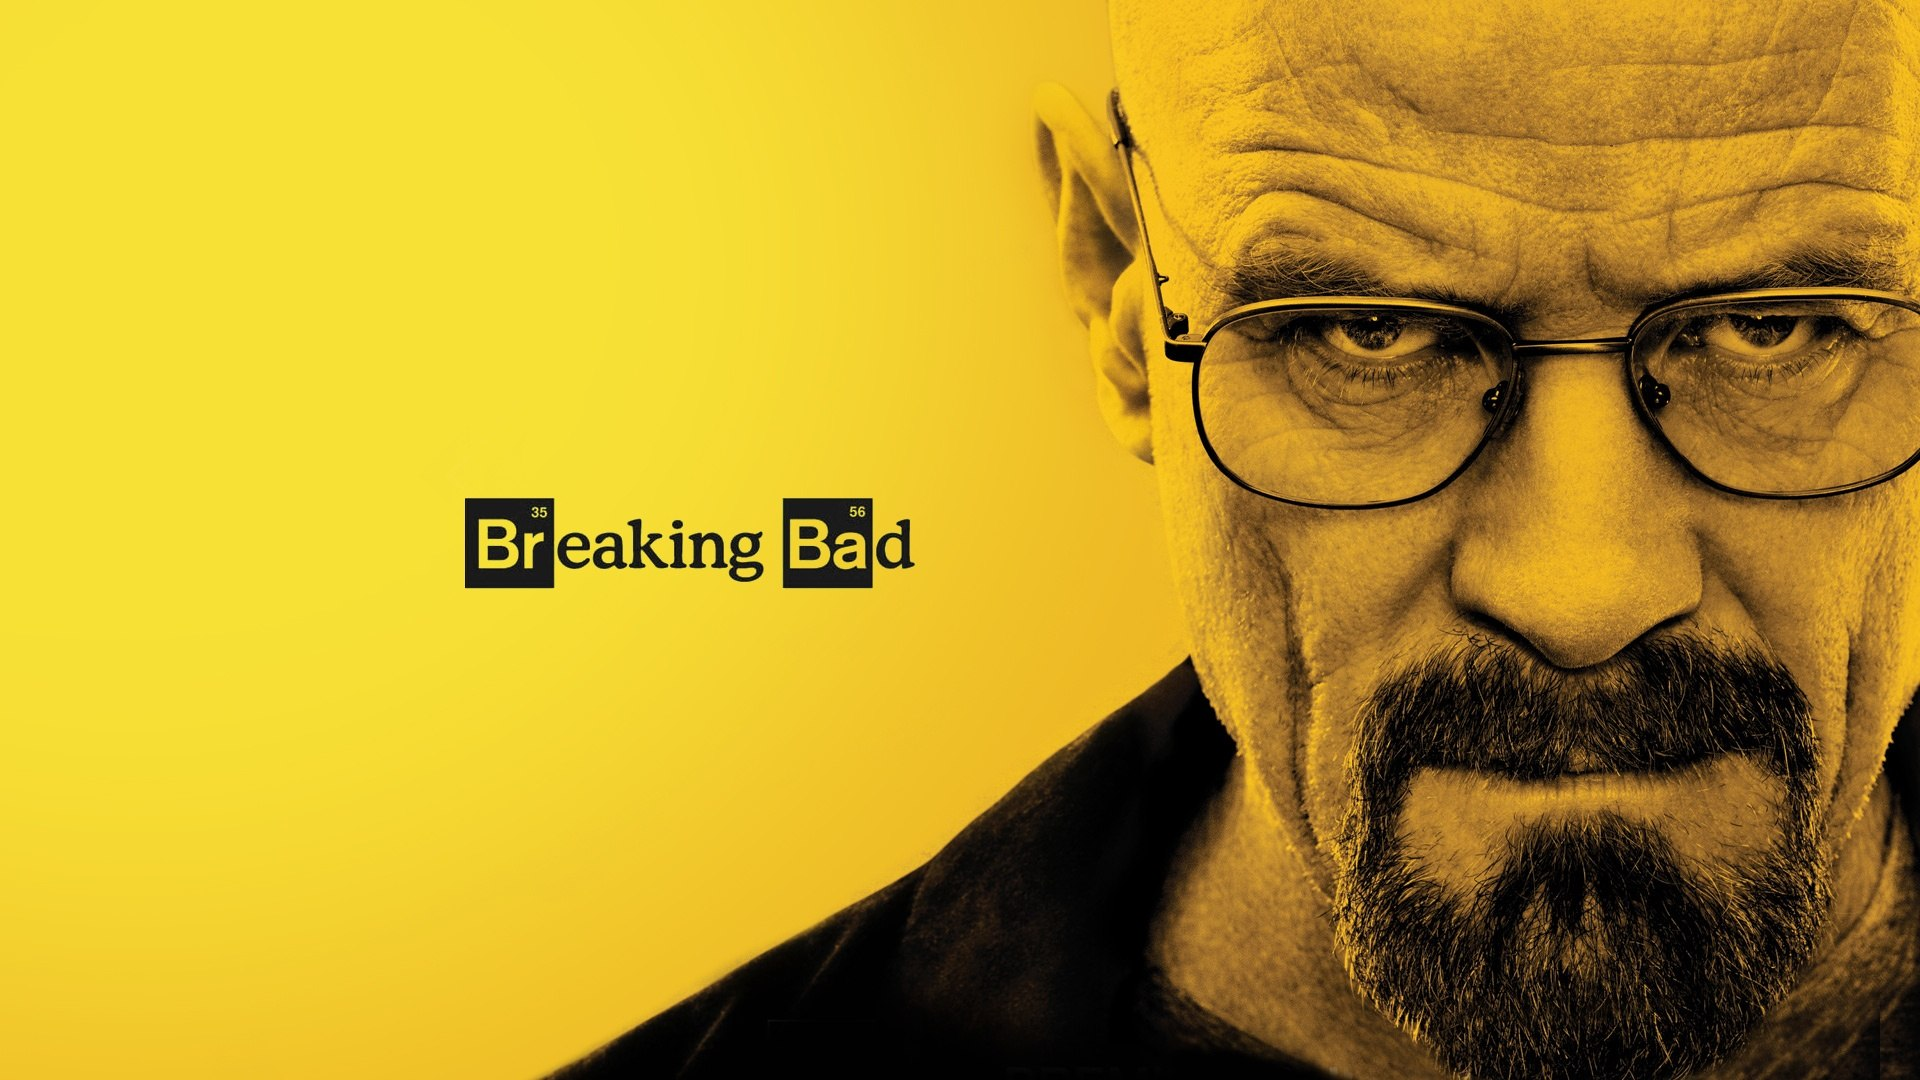 Breaking Bad wallpaper 32